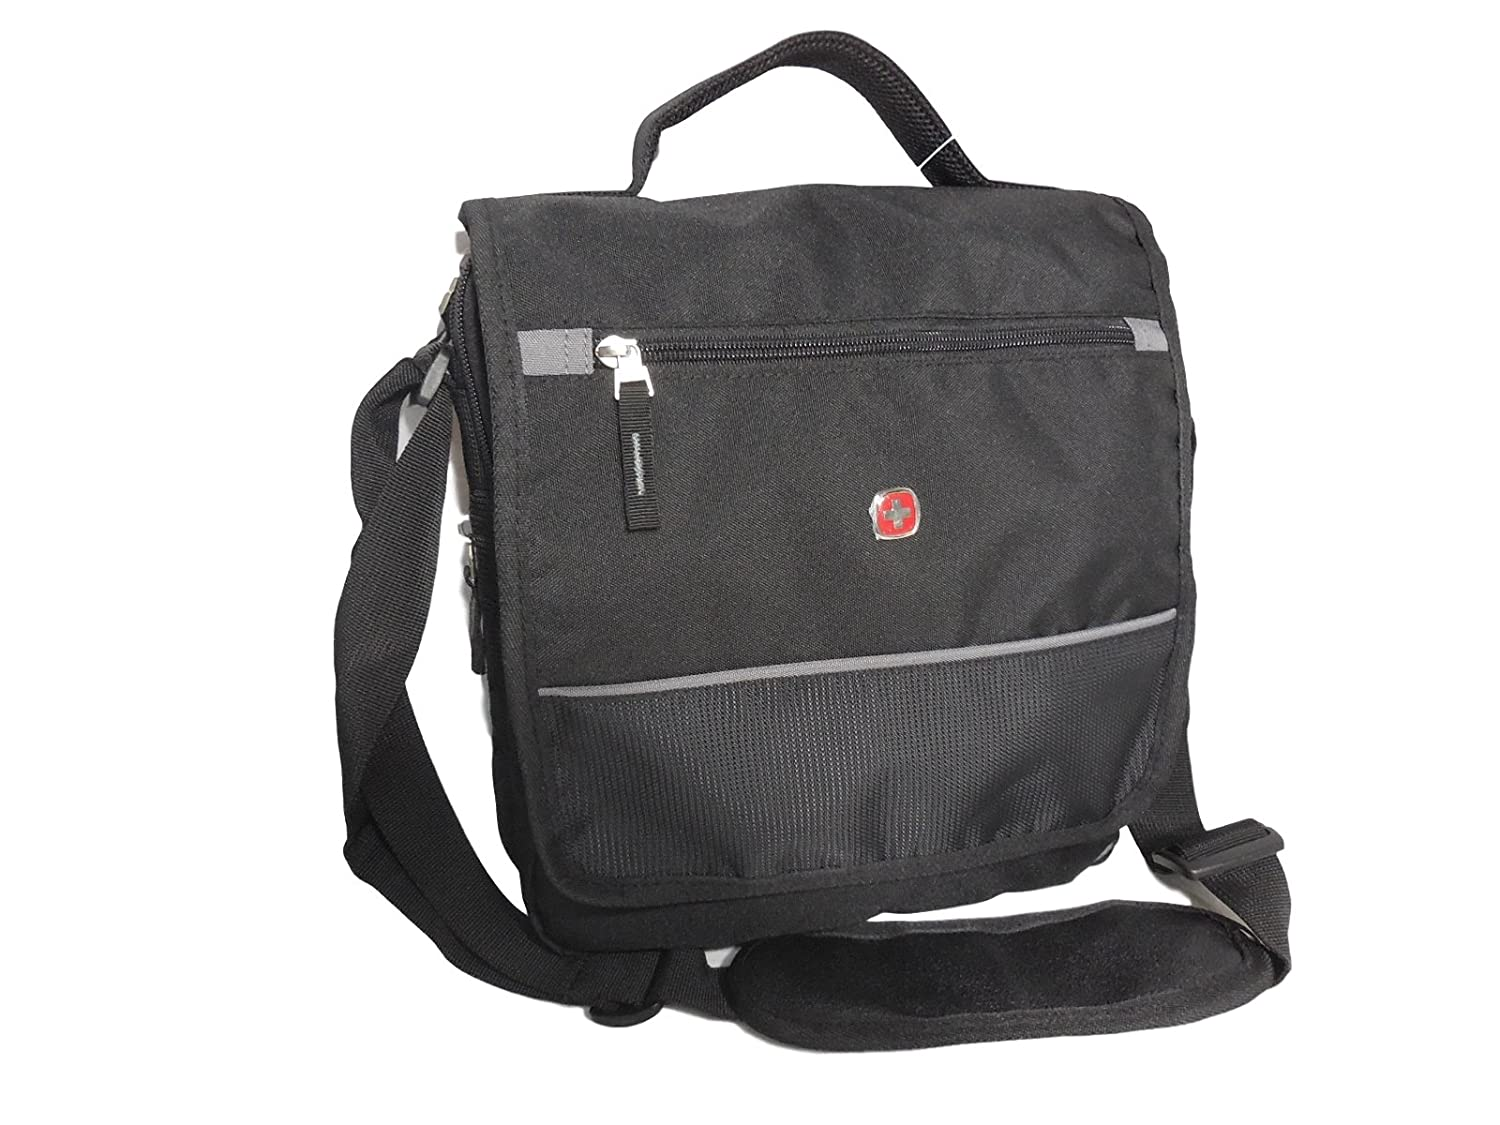 880caff873 Swiss Gear Mini Messenger Sling Body Bag - Black ( to fit for Netbook and  iPad